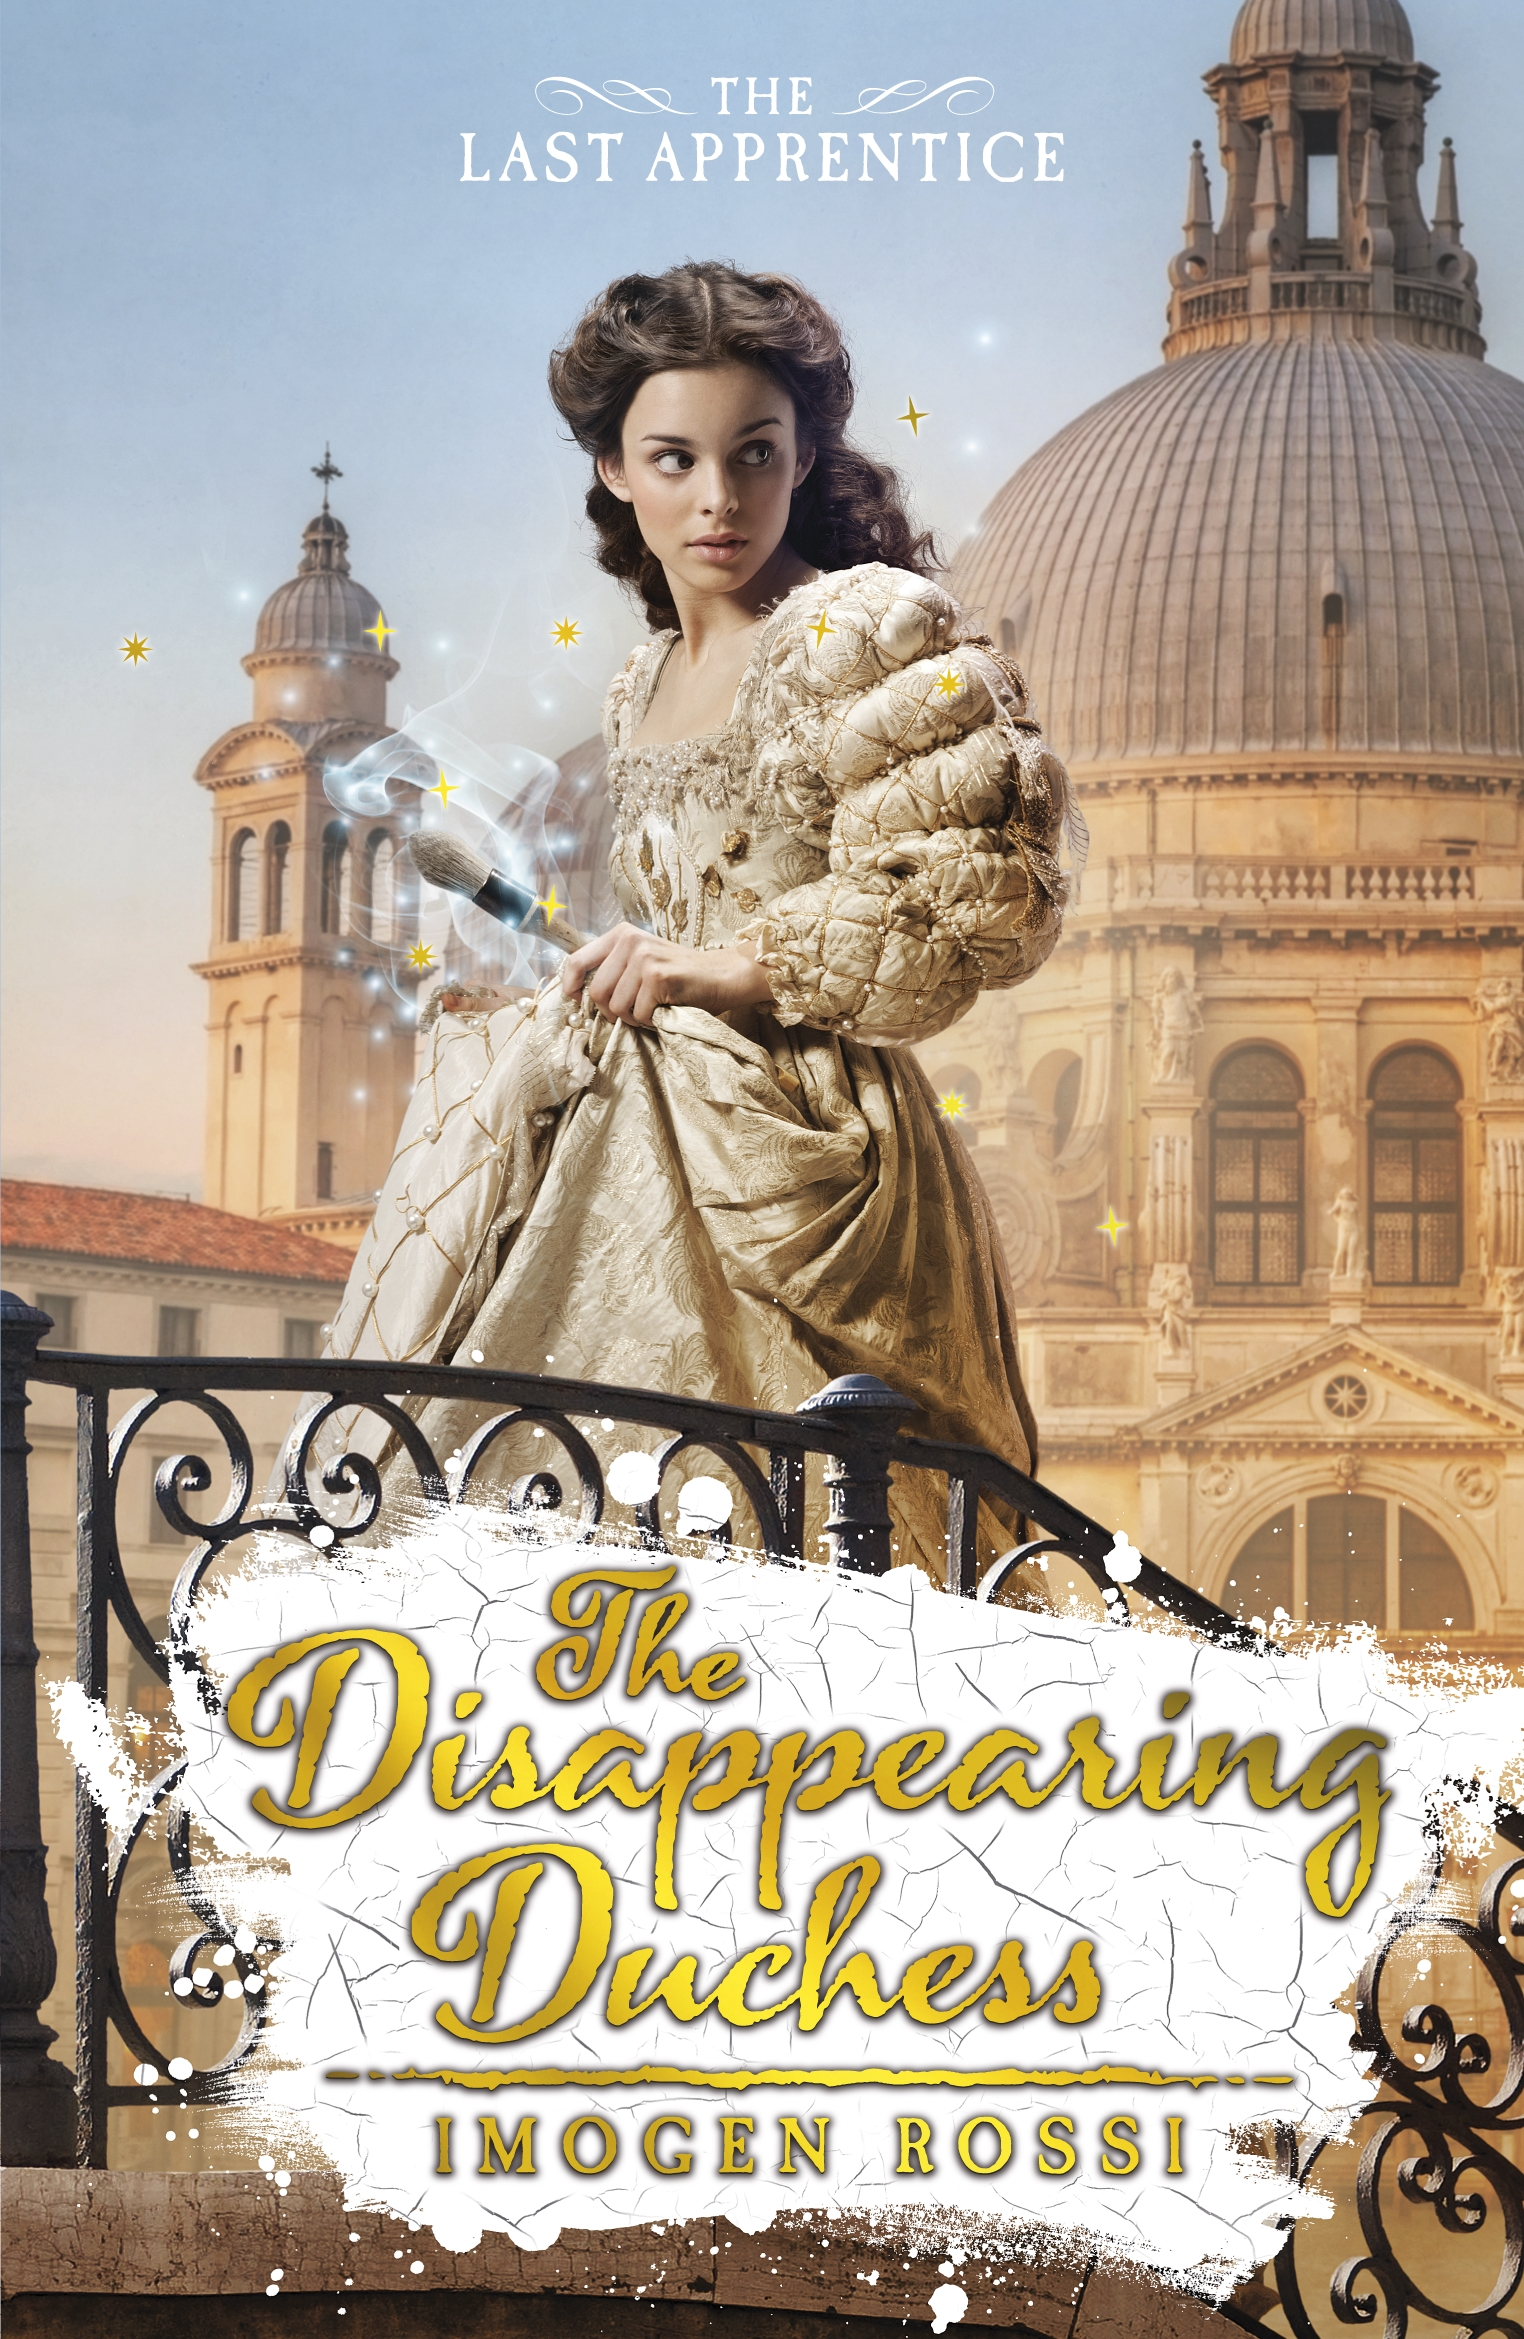 The Disappearing Duchess by Imogen Rossi